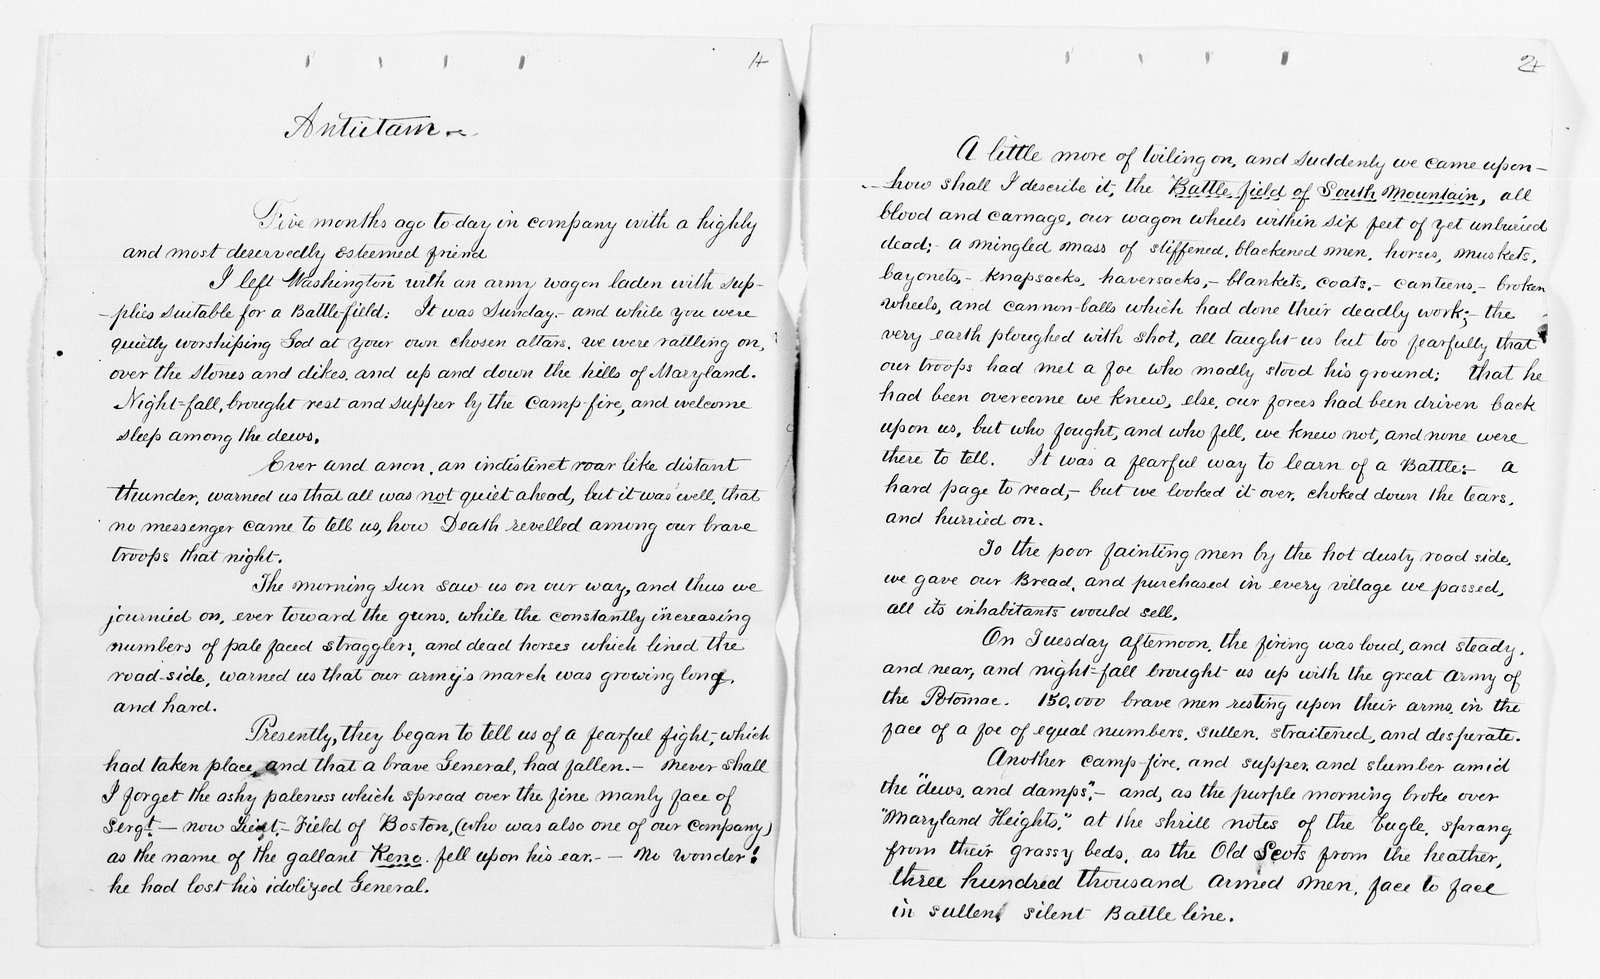 Clara Barton Papers: Speeches and Writings File, 1849-1947; Speeches and lectures; Manuscripts and printed copies; Undated